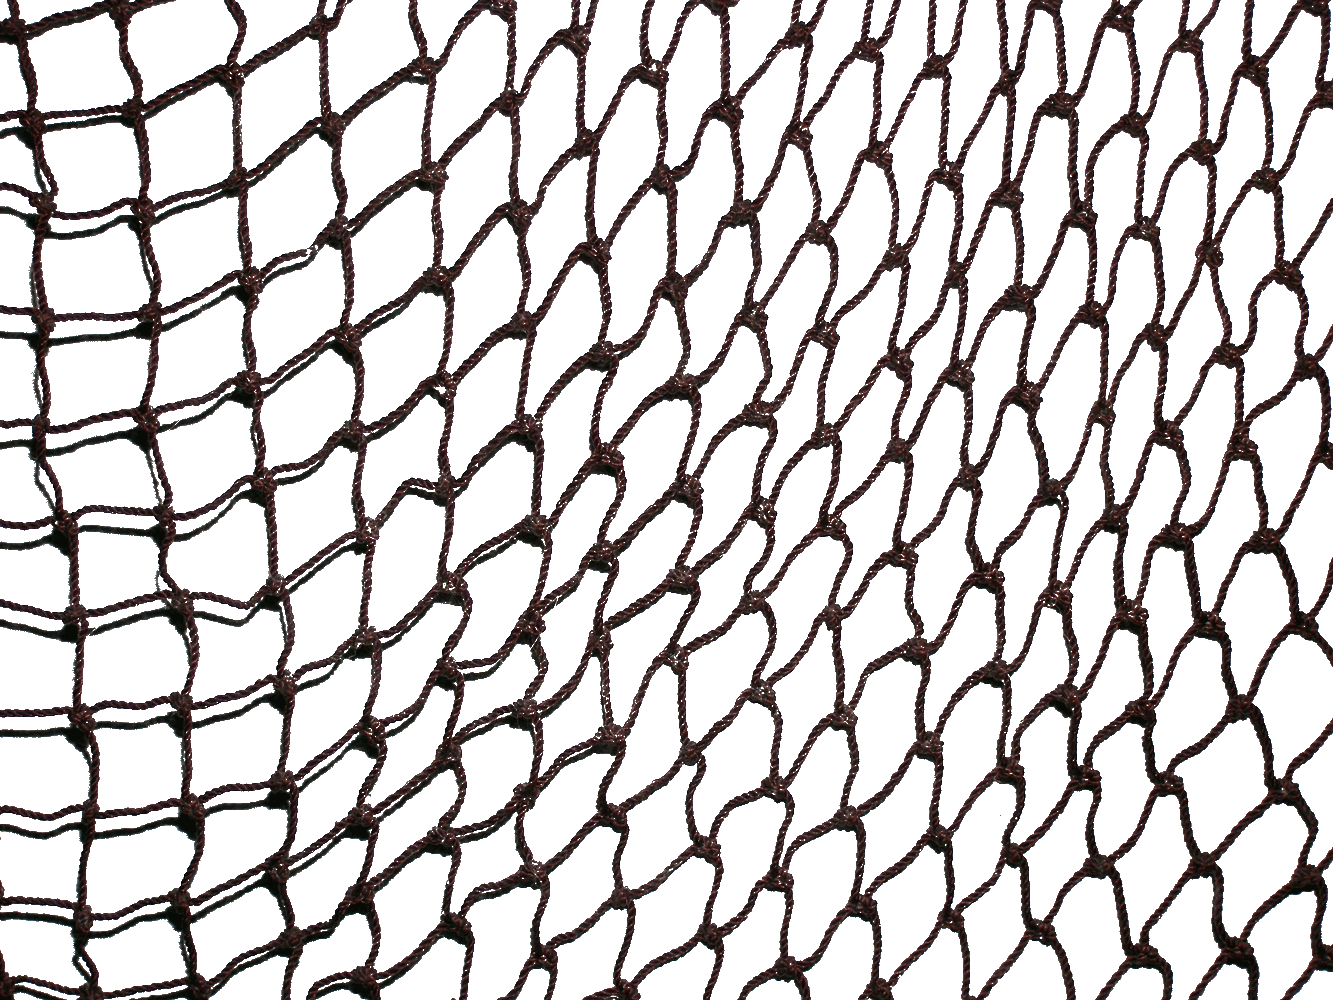 freeuse stock Fishing Net Drawing at GetDrawings